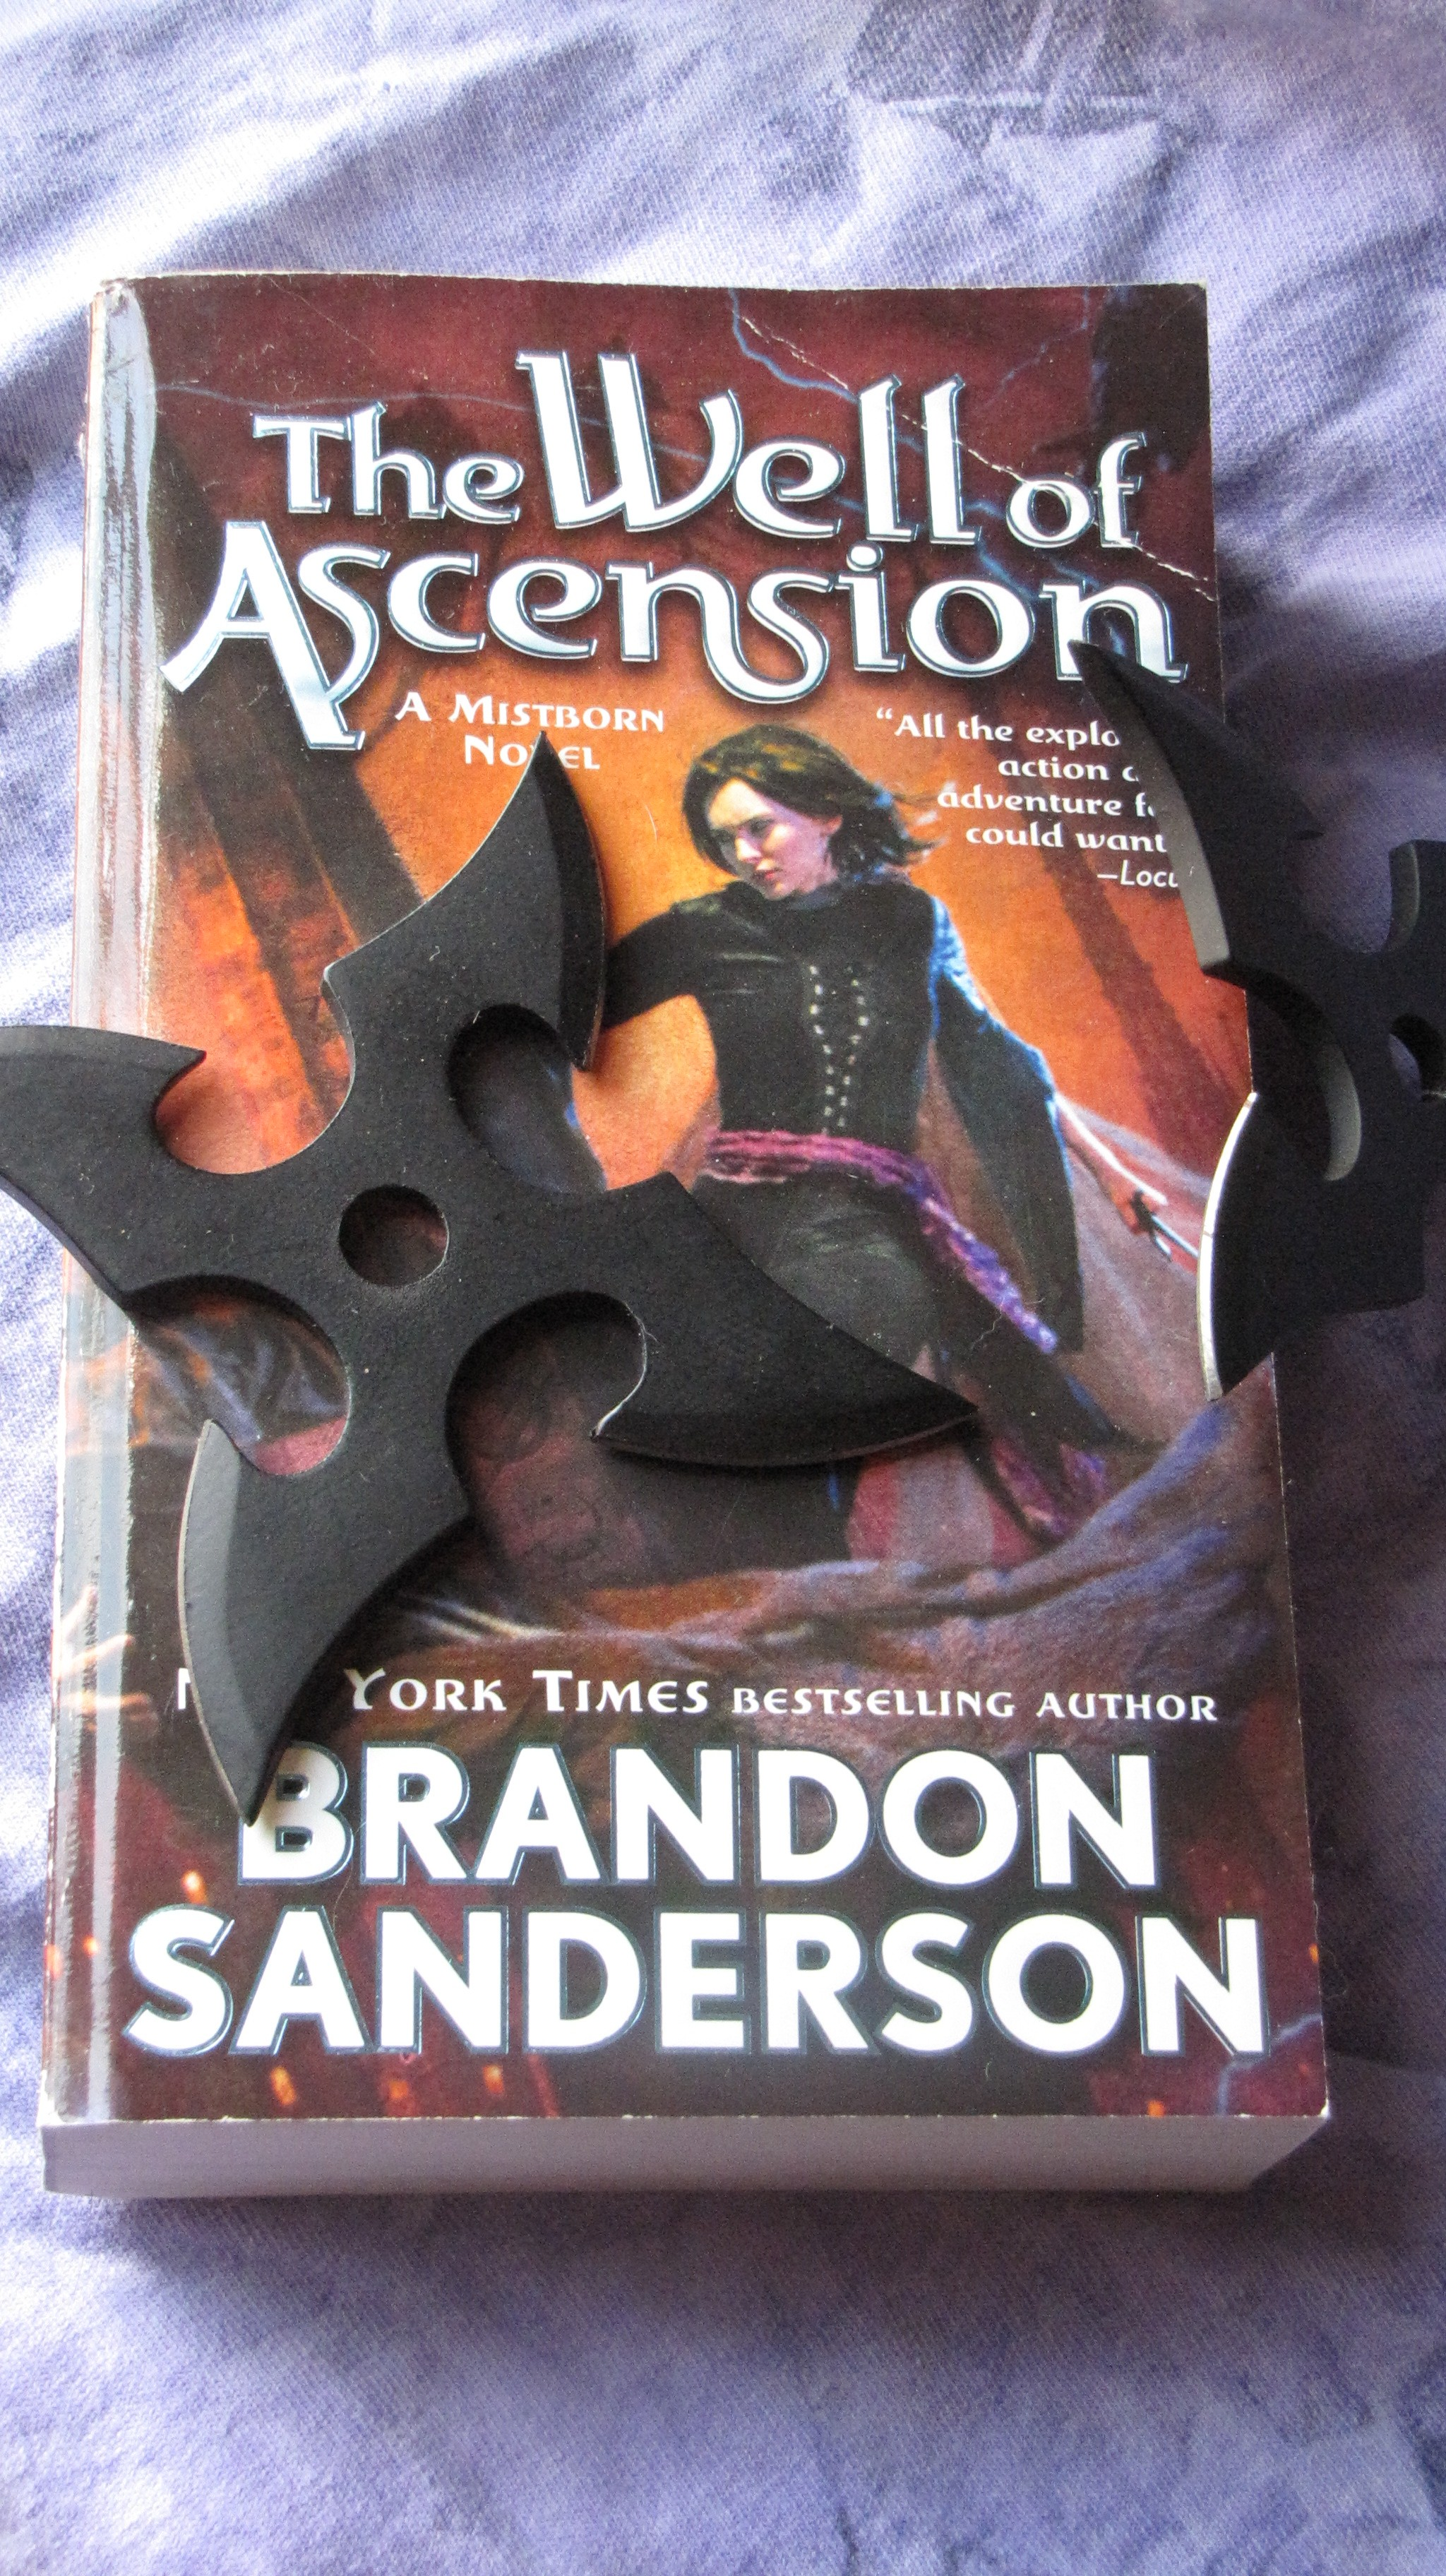 the well of ascension s anderson br andon